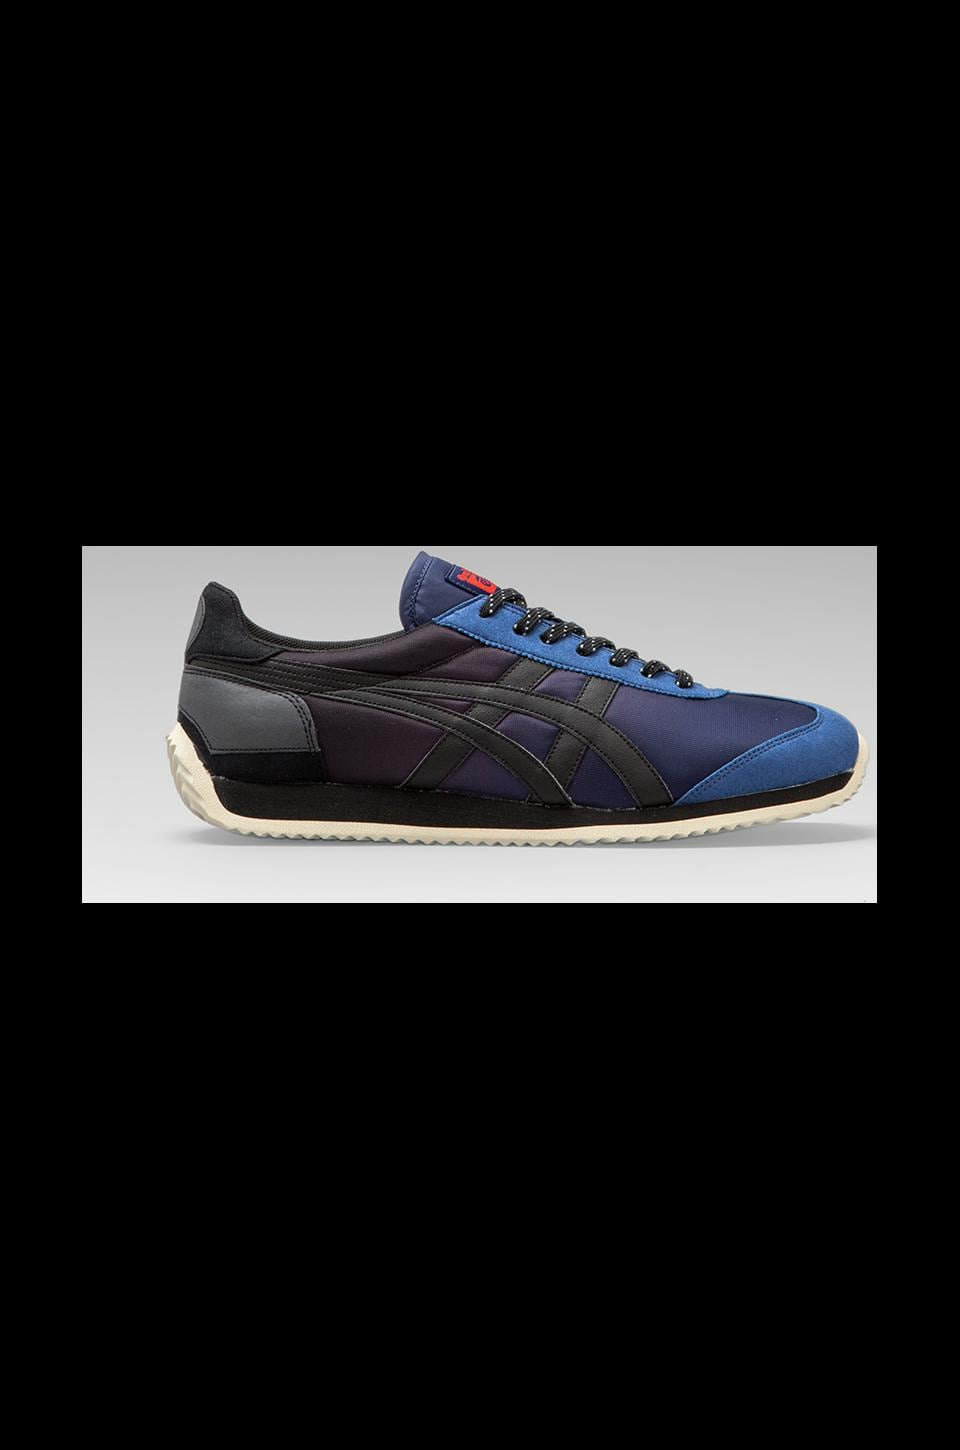 Onitsuka Tiger California 78 Anniversary in Navy/Black